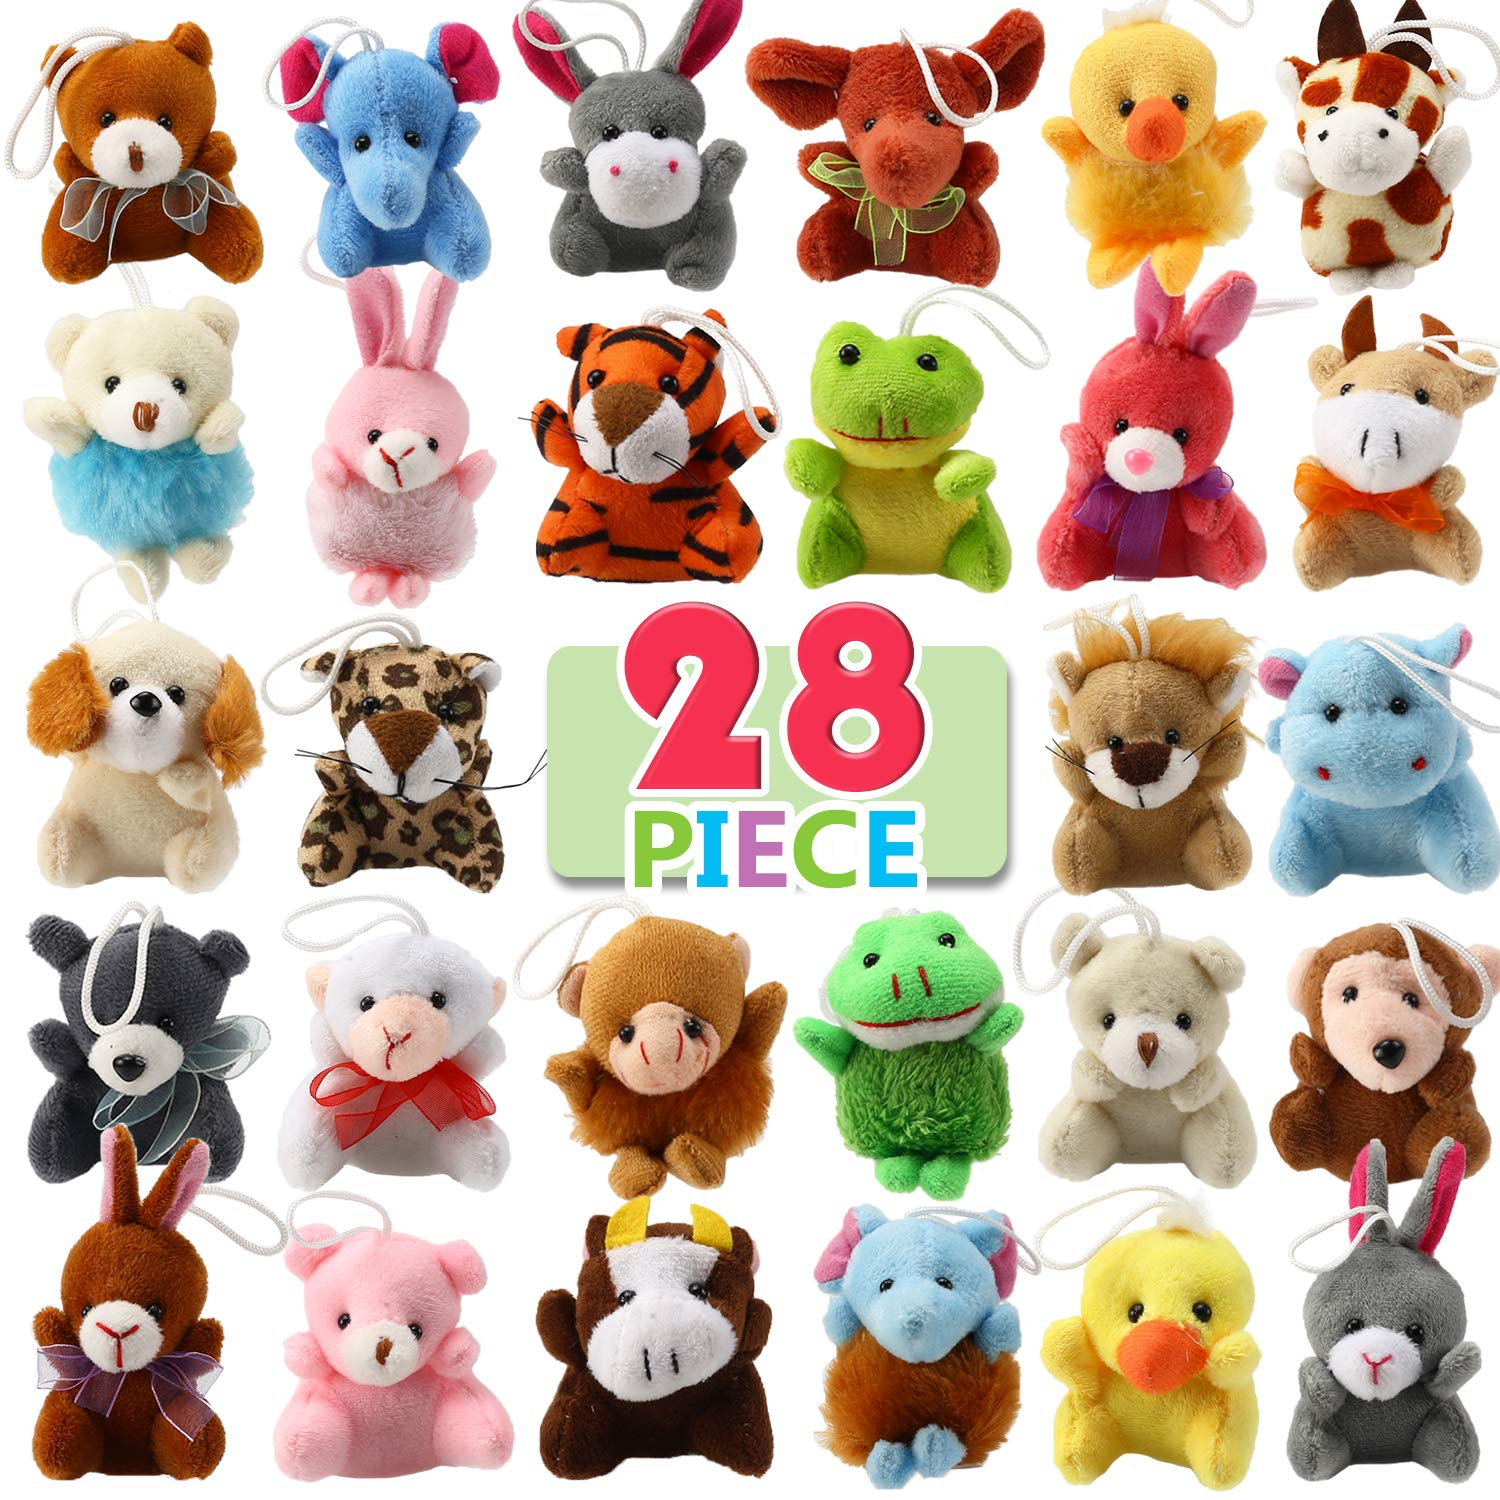 28 Piece Mini Plush Animal Toy Set, Cute Small Animals Plush Keychain Decoration for Themed Parties, Kindergarten Gift Giveaway, Teacher Student Award, Goody Bags Filler For Boys Girls Child Kid by Punertoy